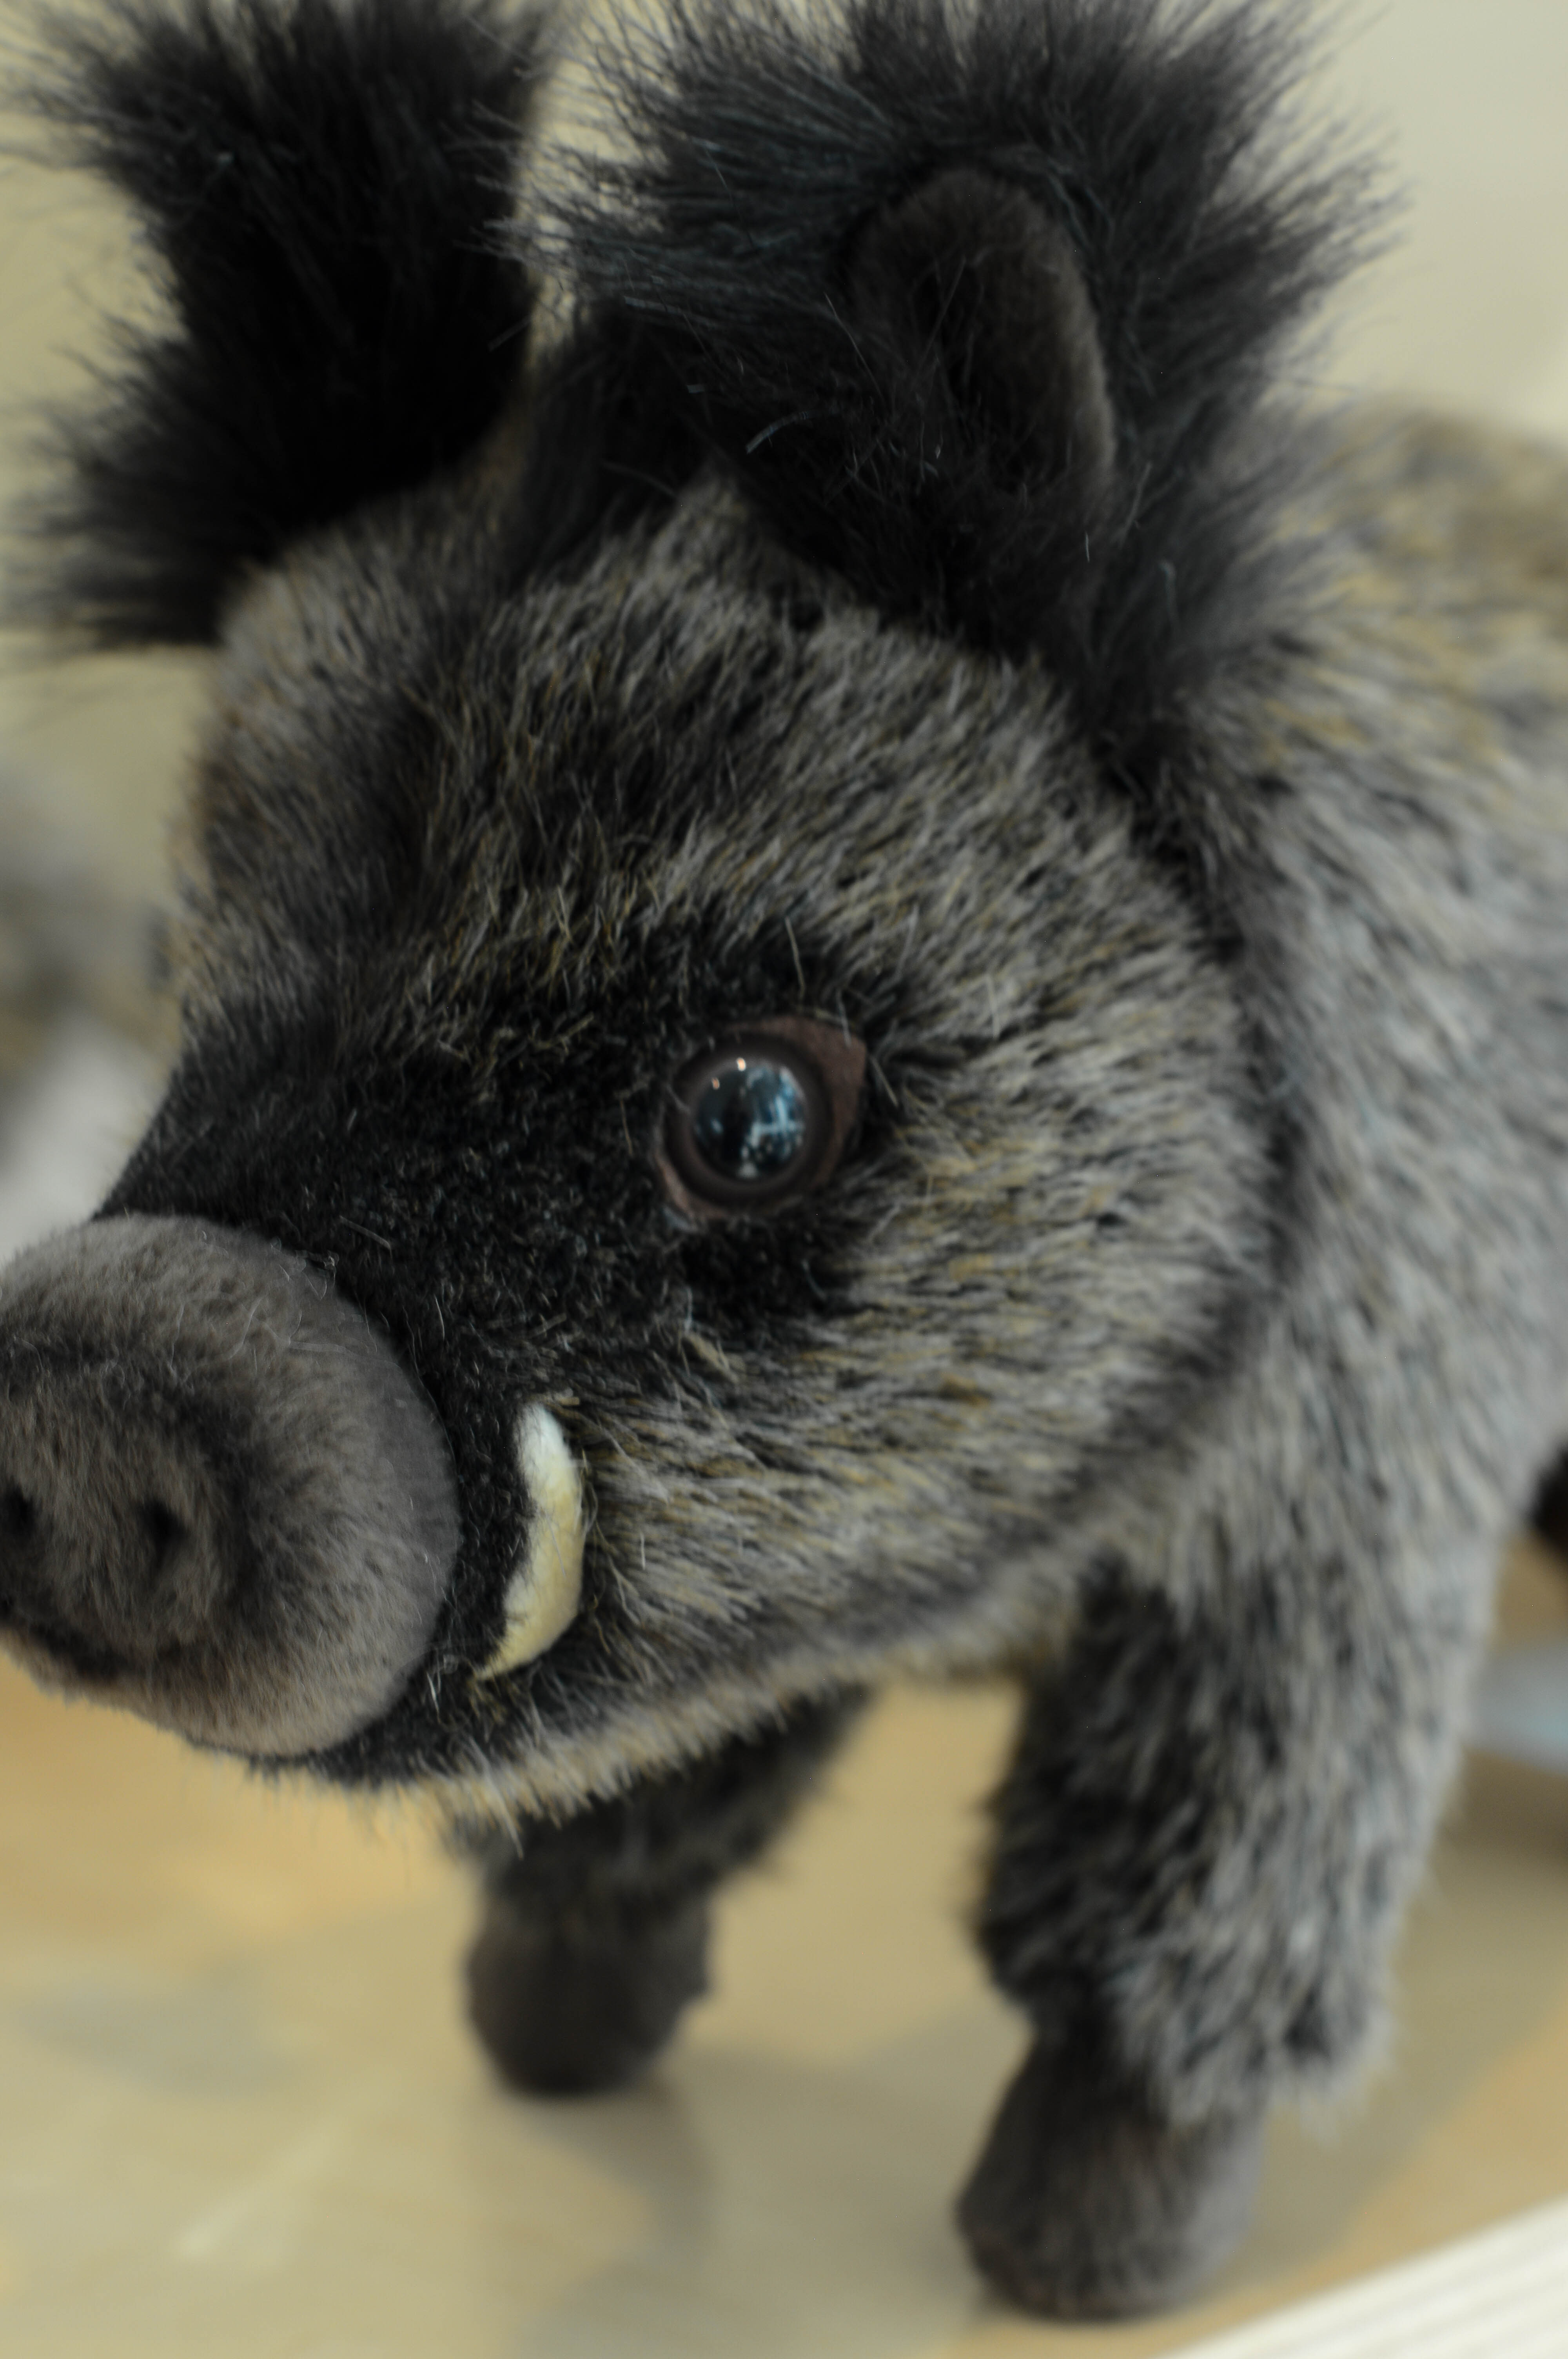 The Museum shop carries a stuffed boar in its Audubon Wilderness Outpost.